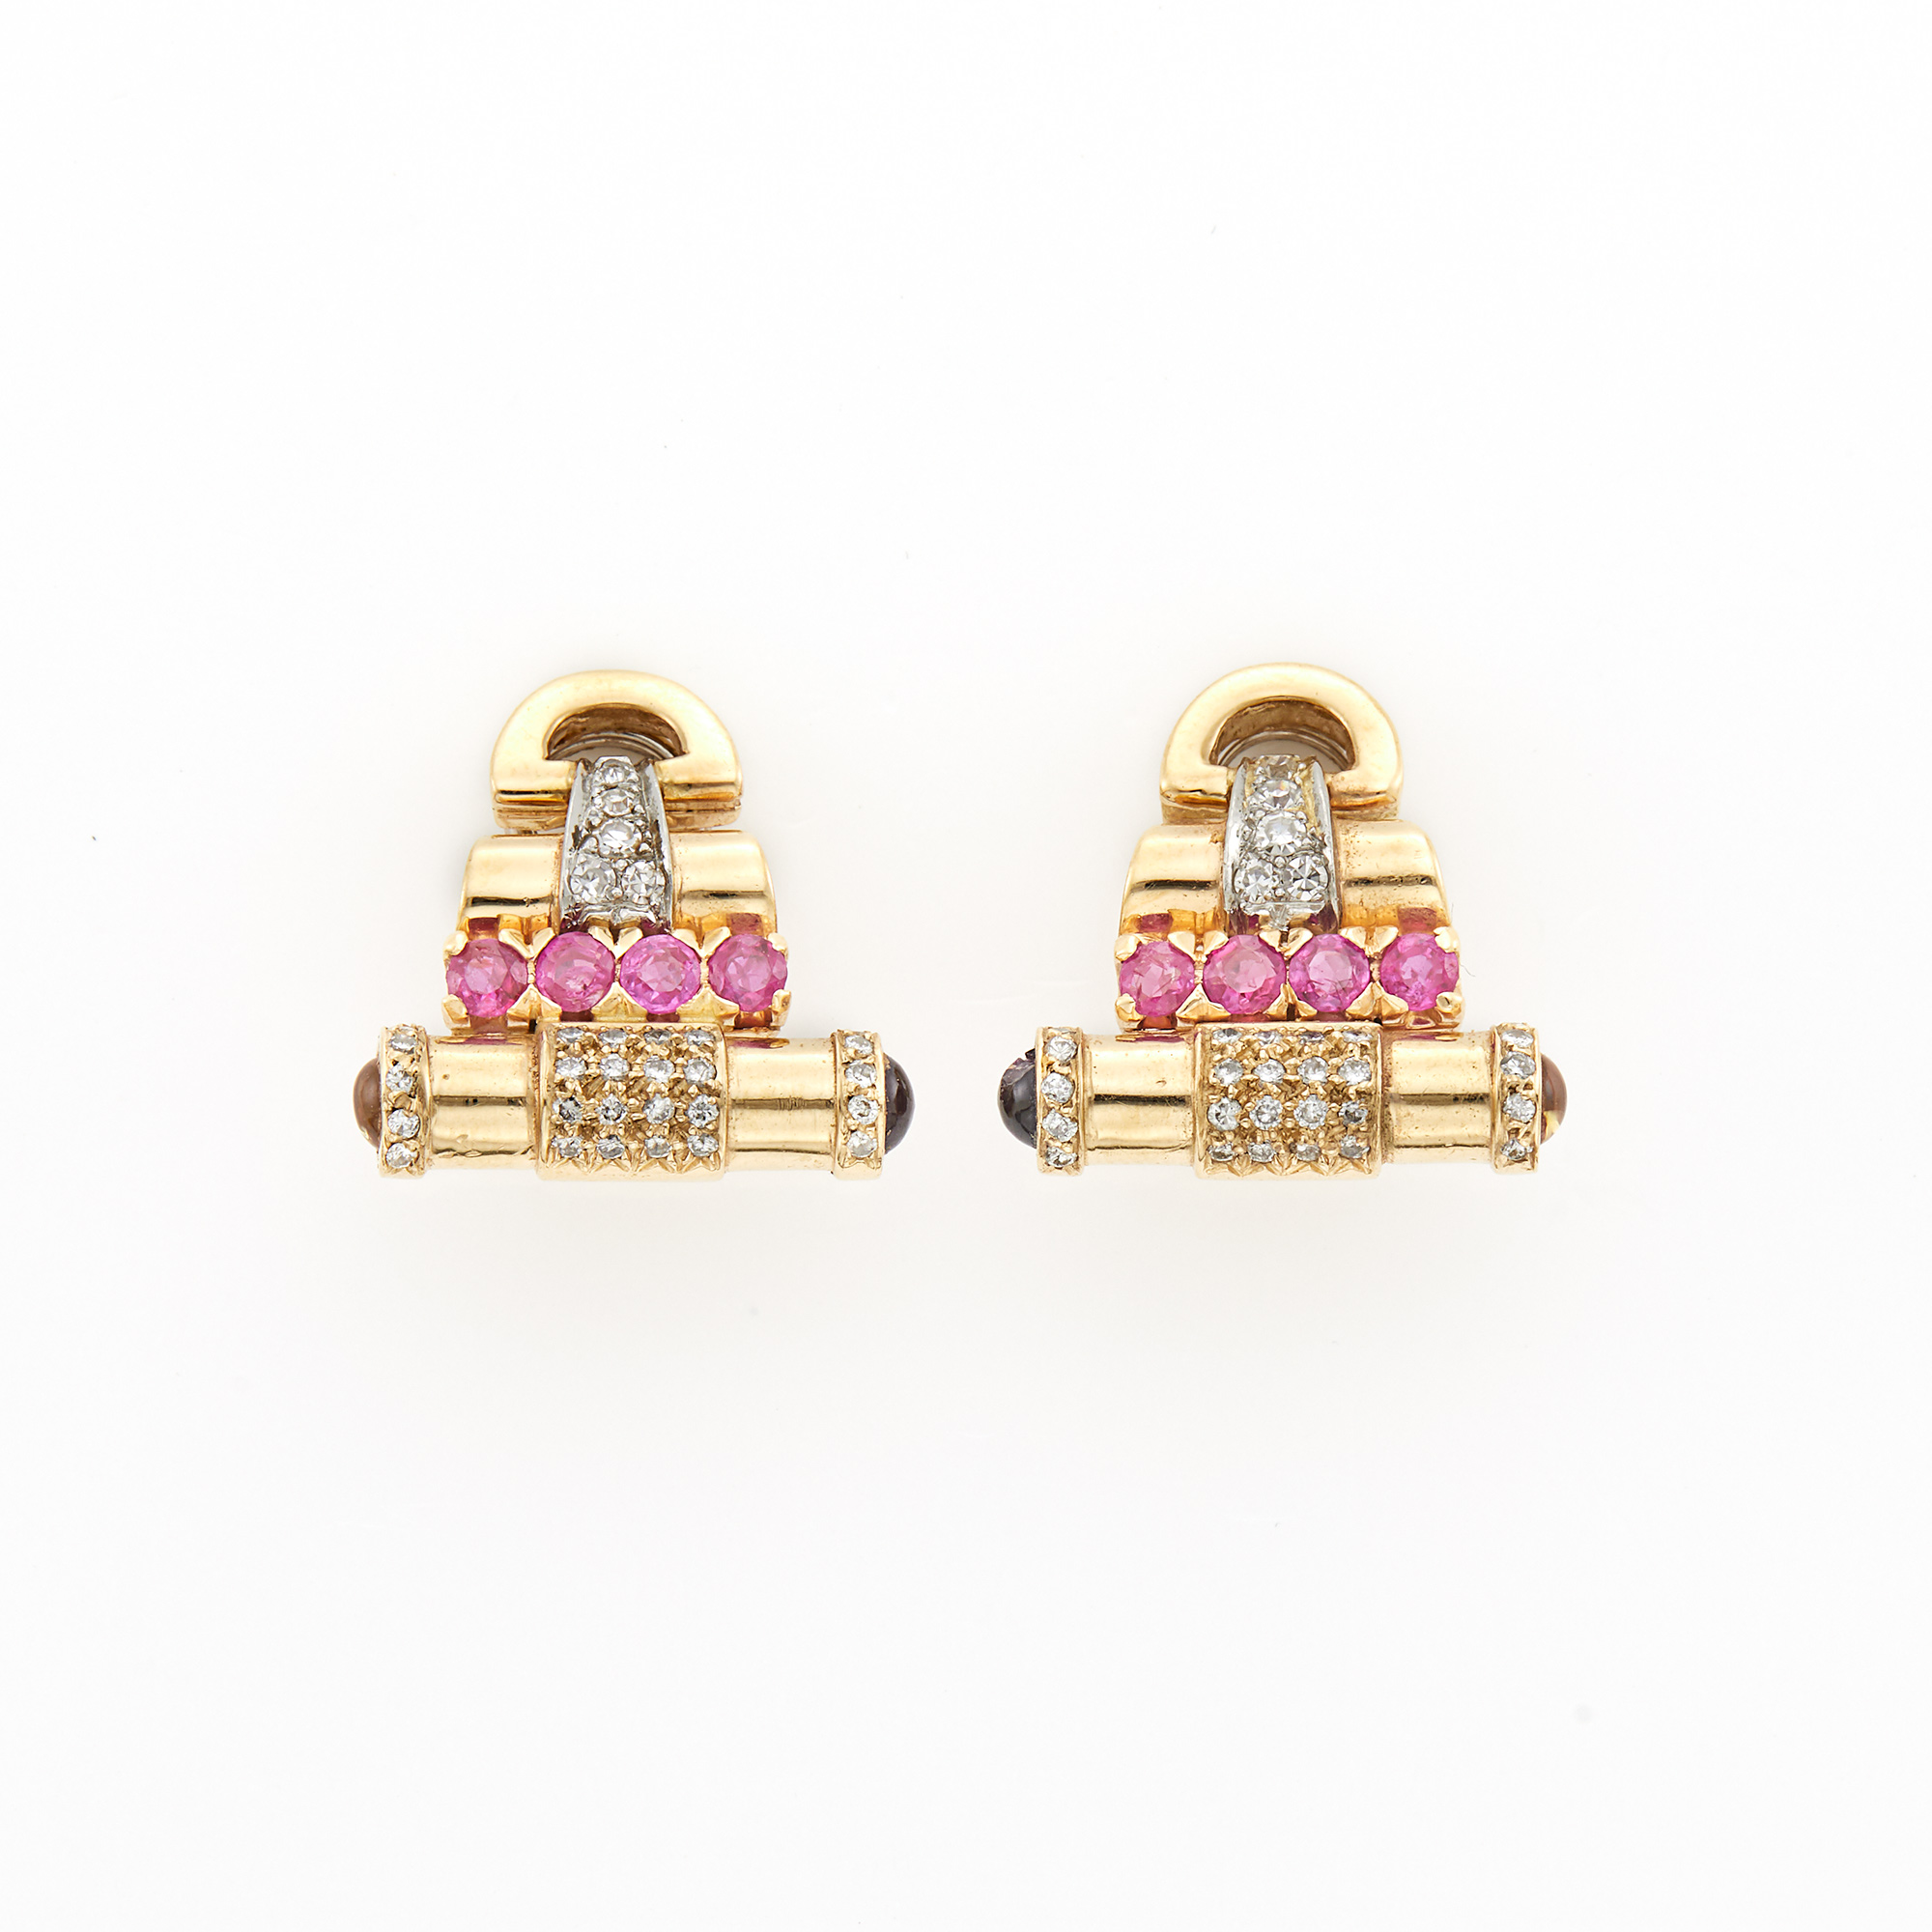 Lot image - Pair of Gold, Ruby and Diamond Earrings